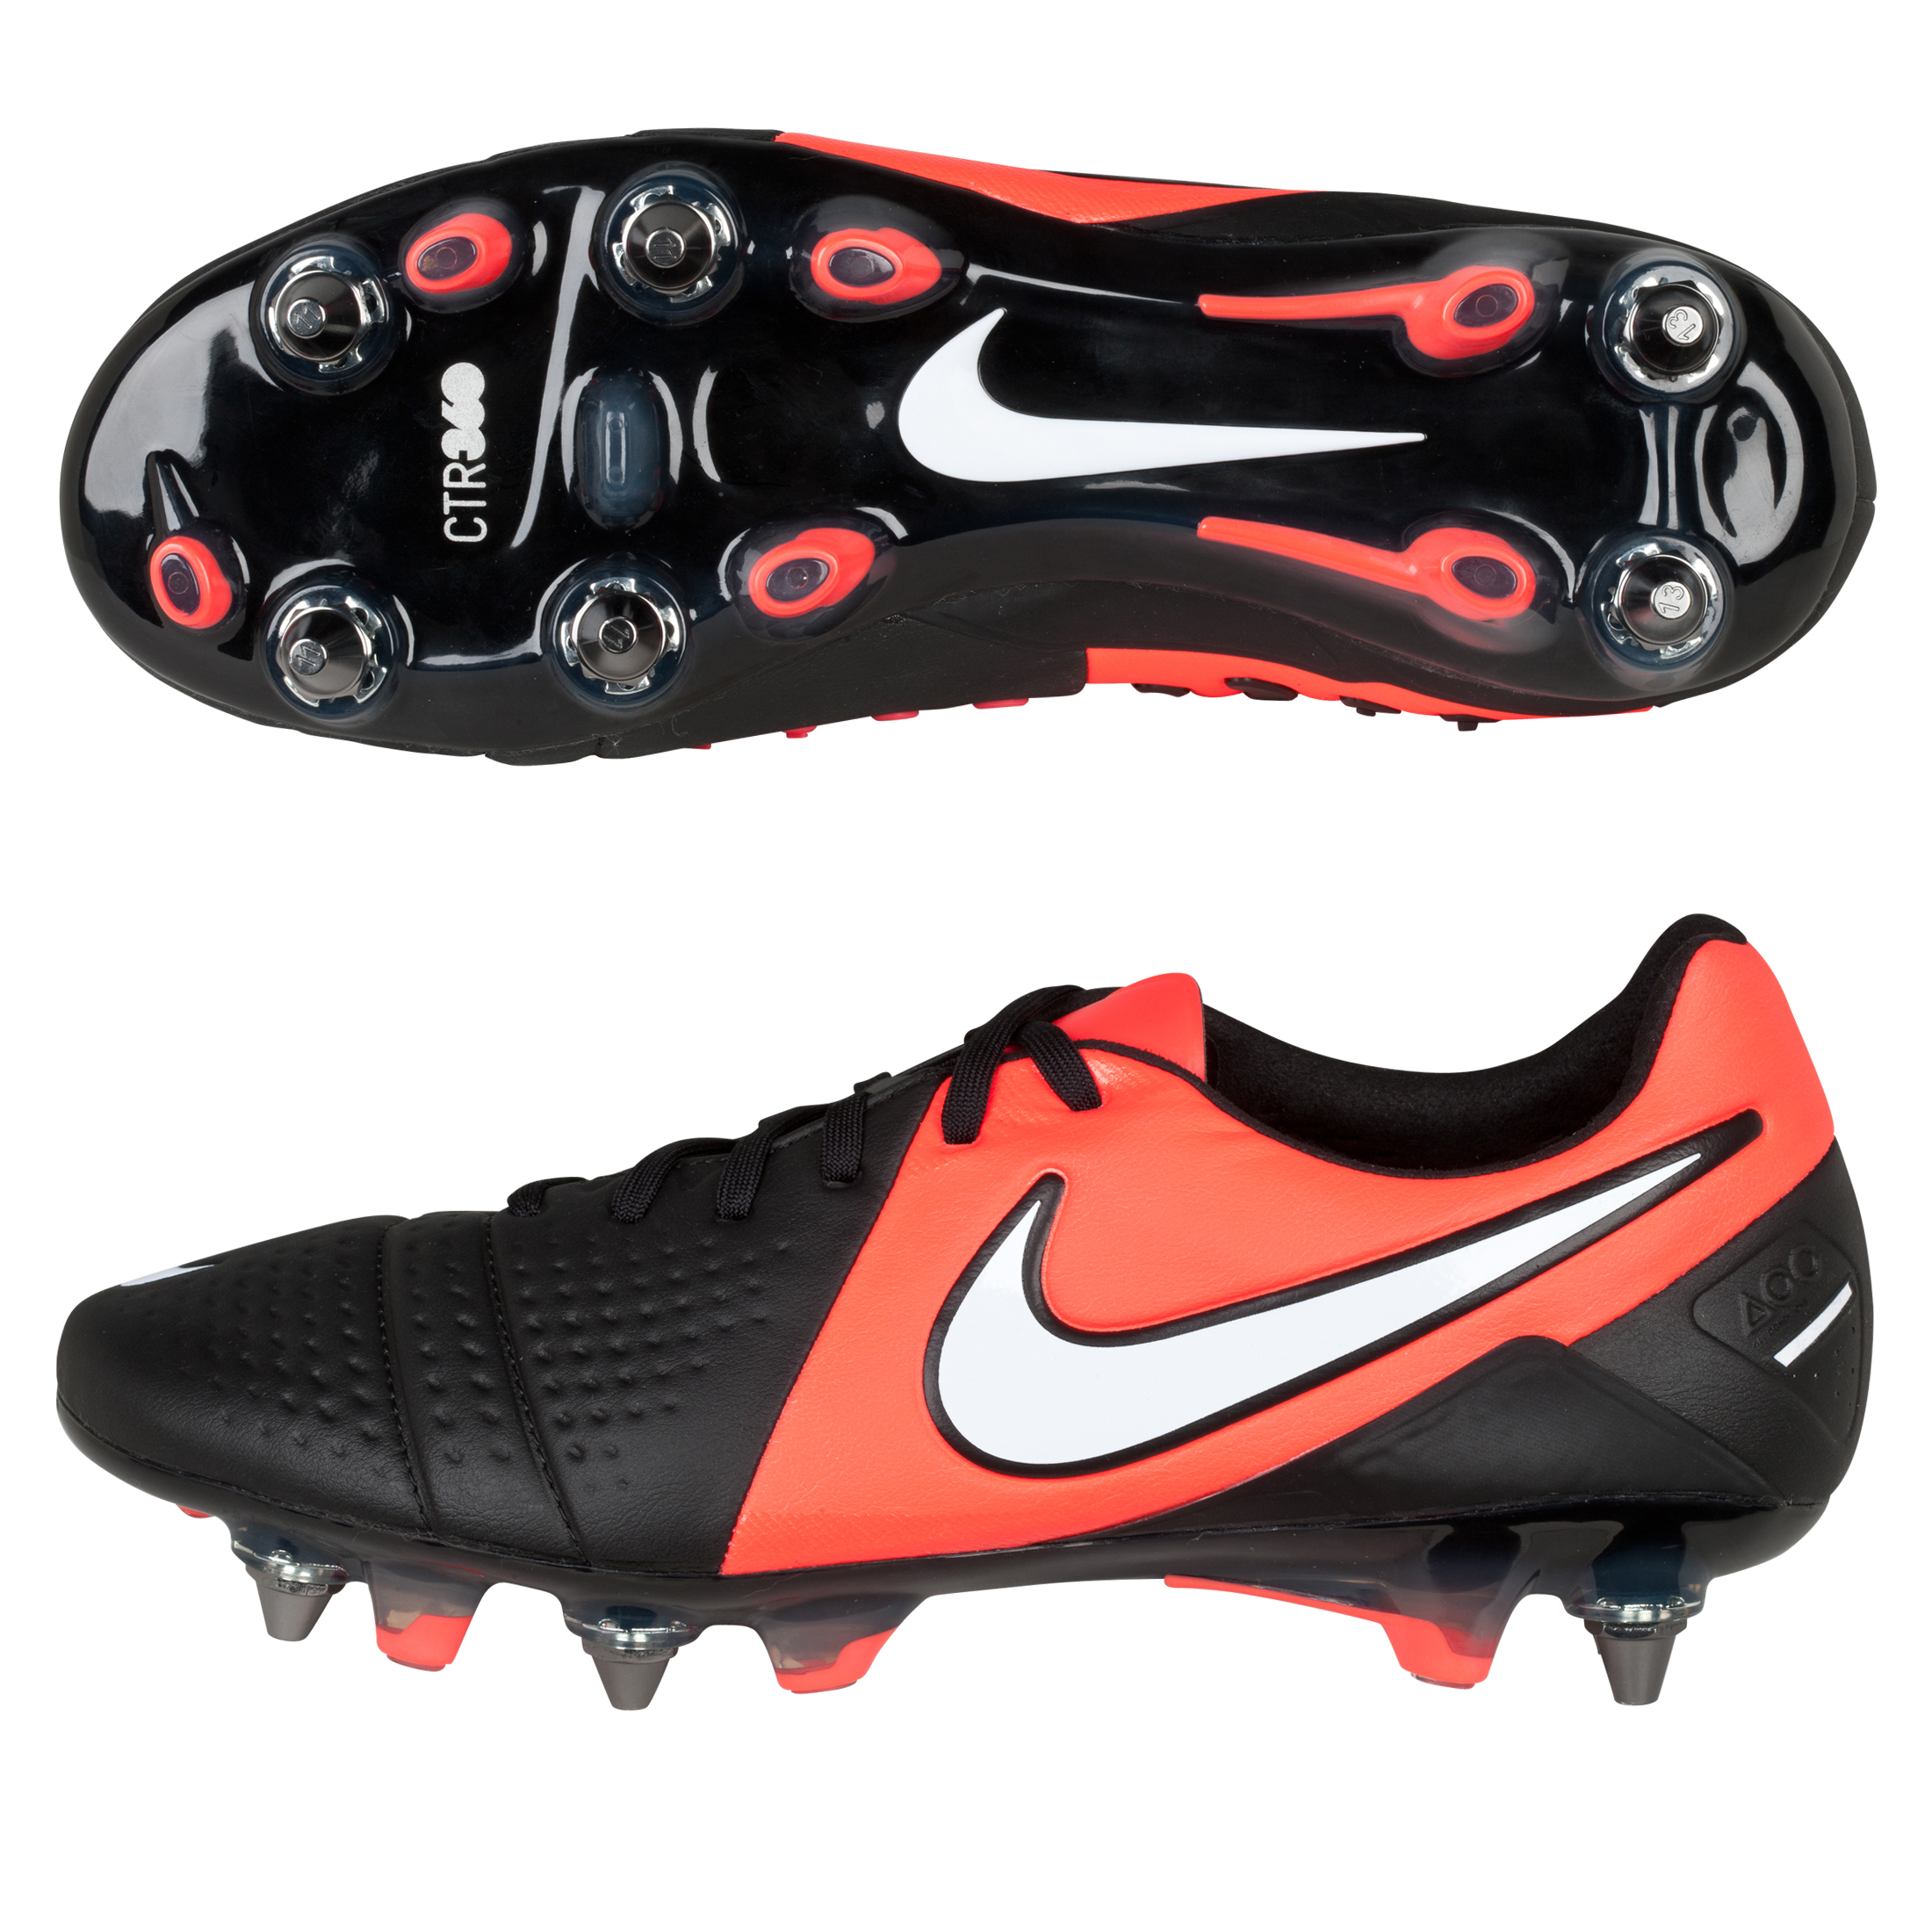 CTR360 Maestri III SG-Pro Black/White/Bright Crimson